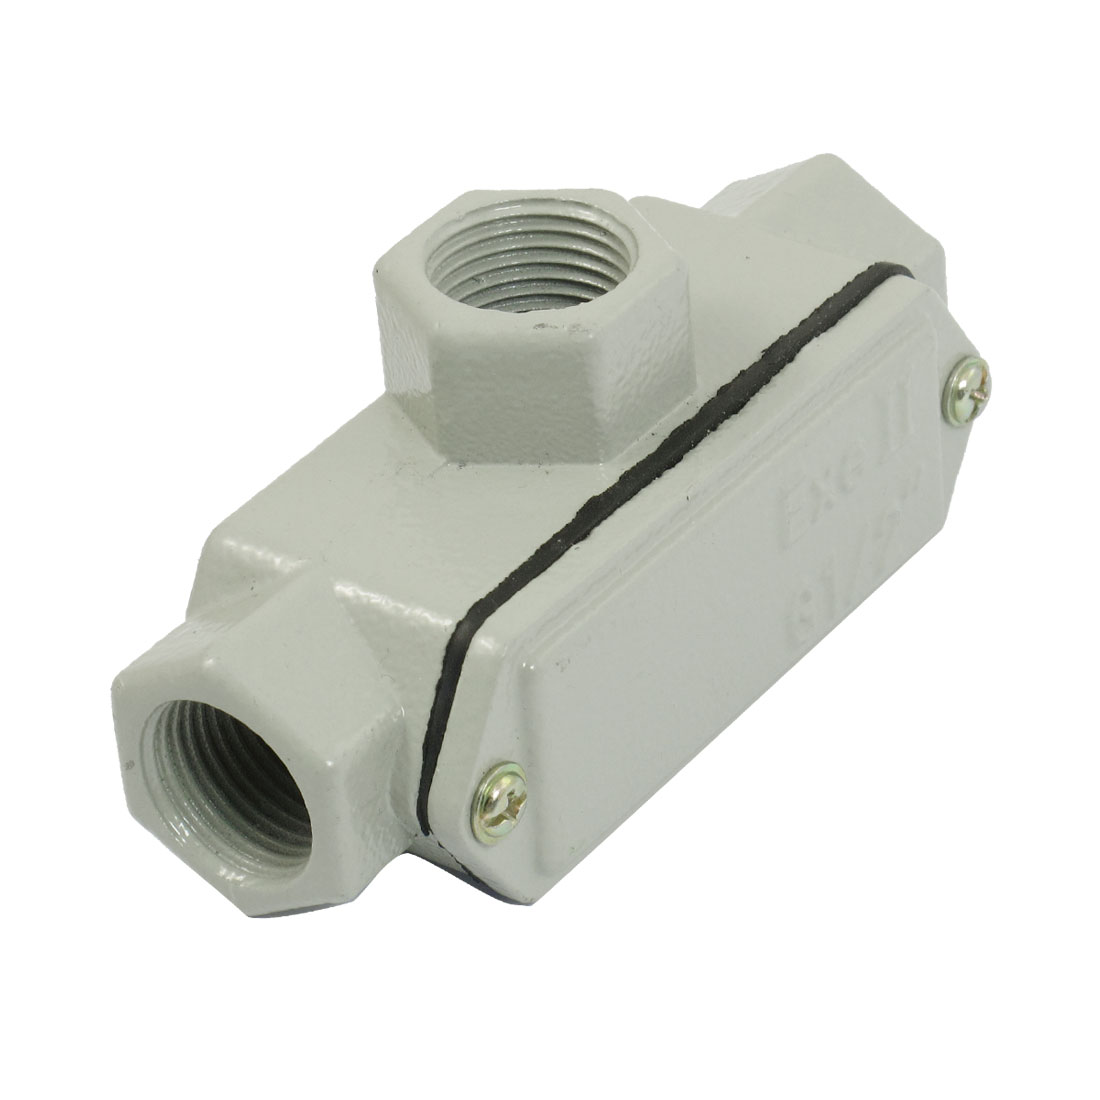 Metal-Shell-Three-Hub-Explosion-proof-Conduit-Outlet-Box-G1-2